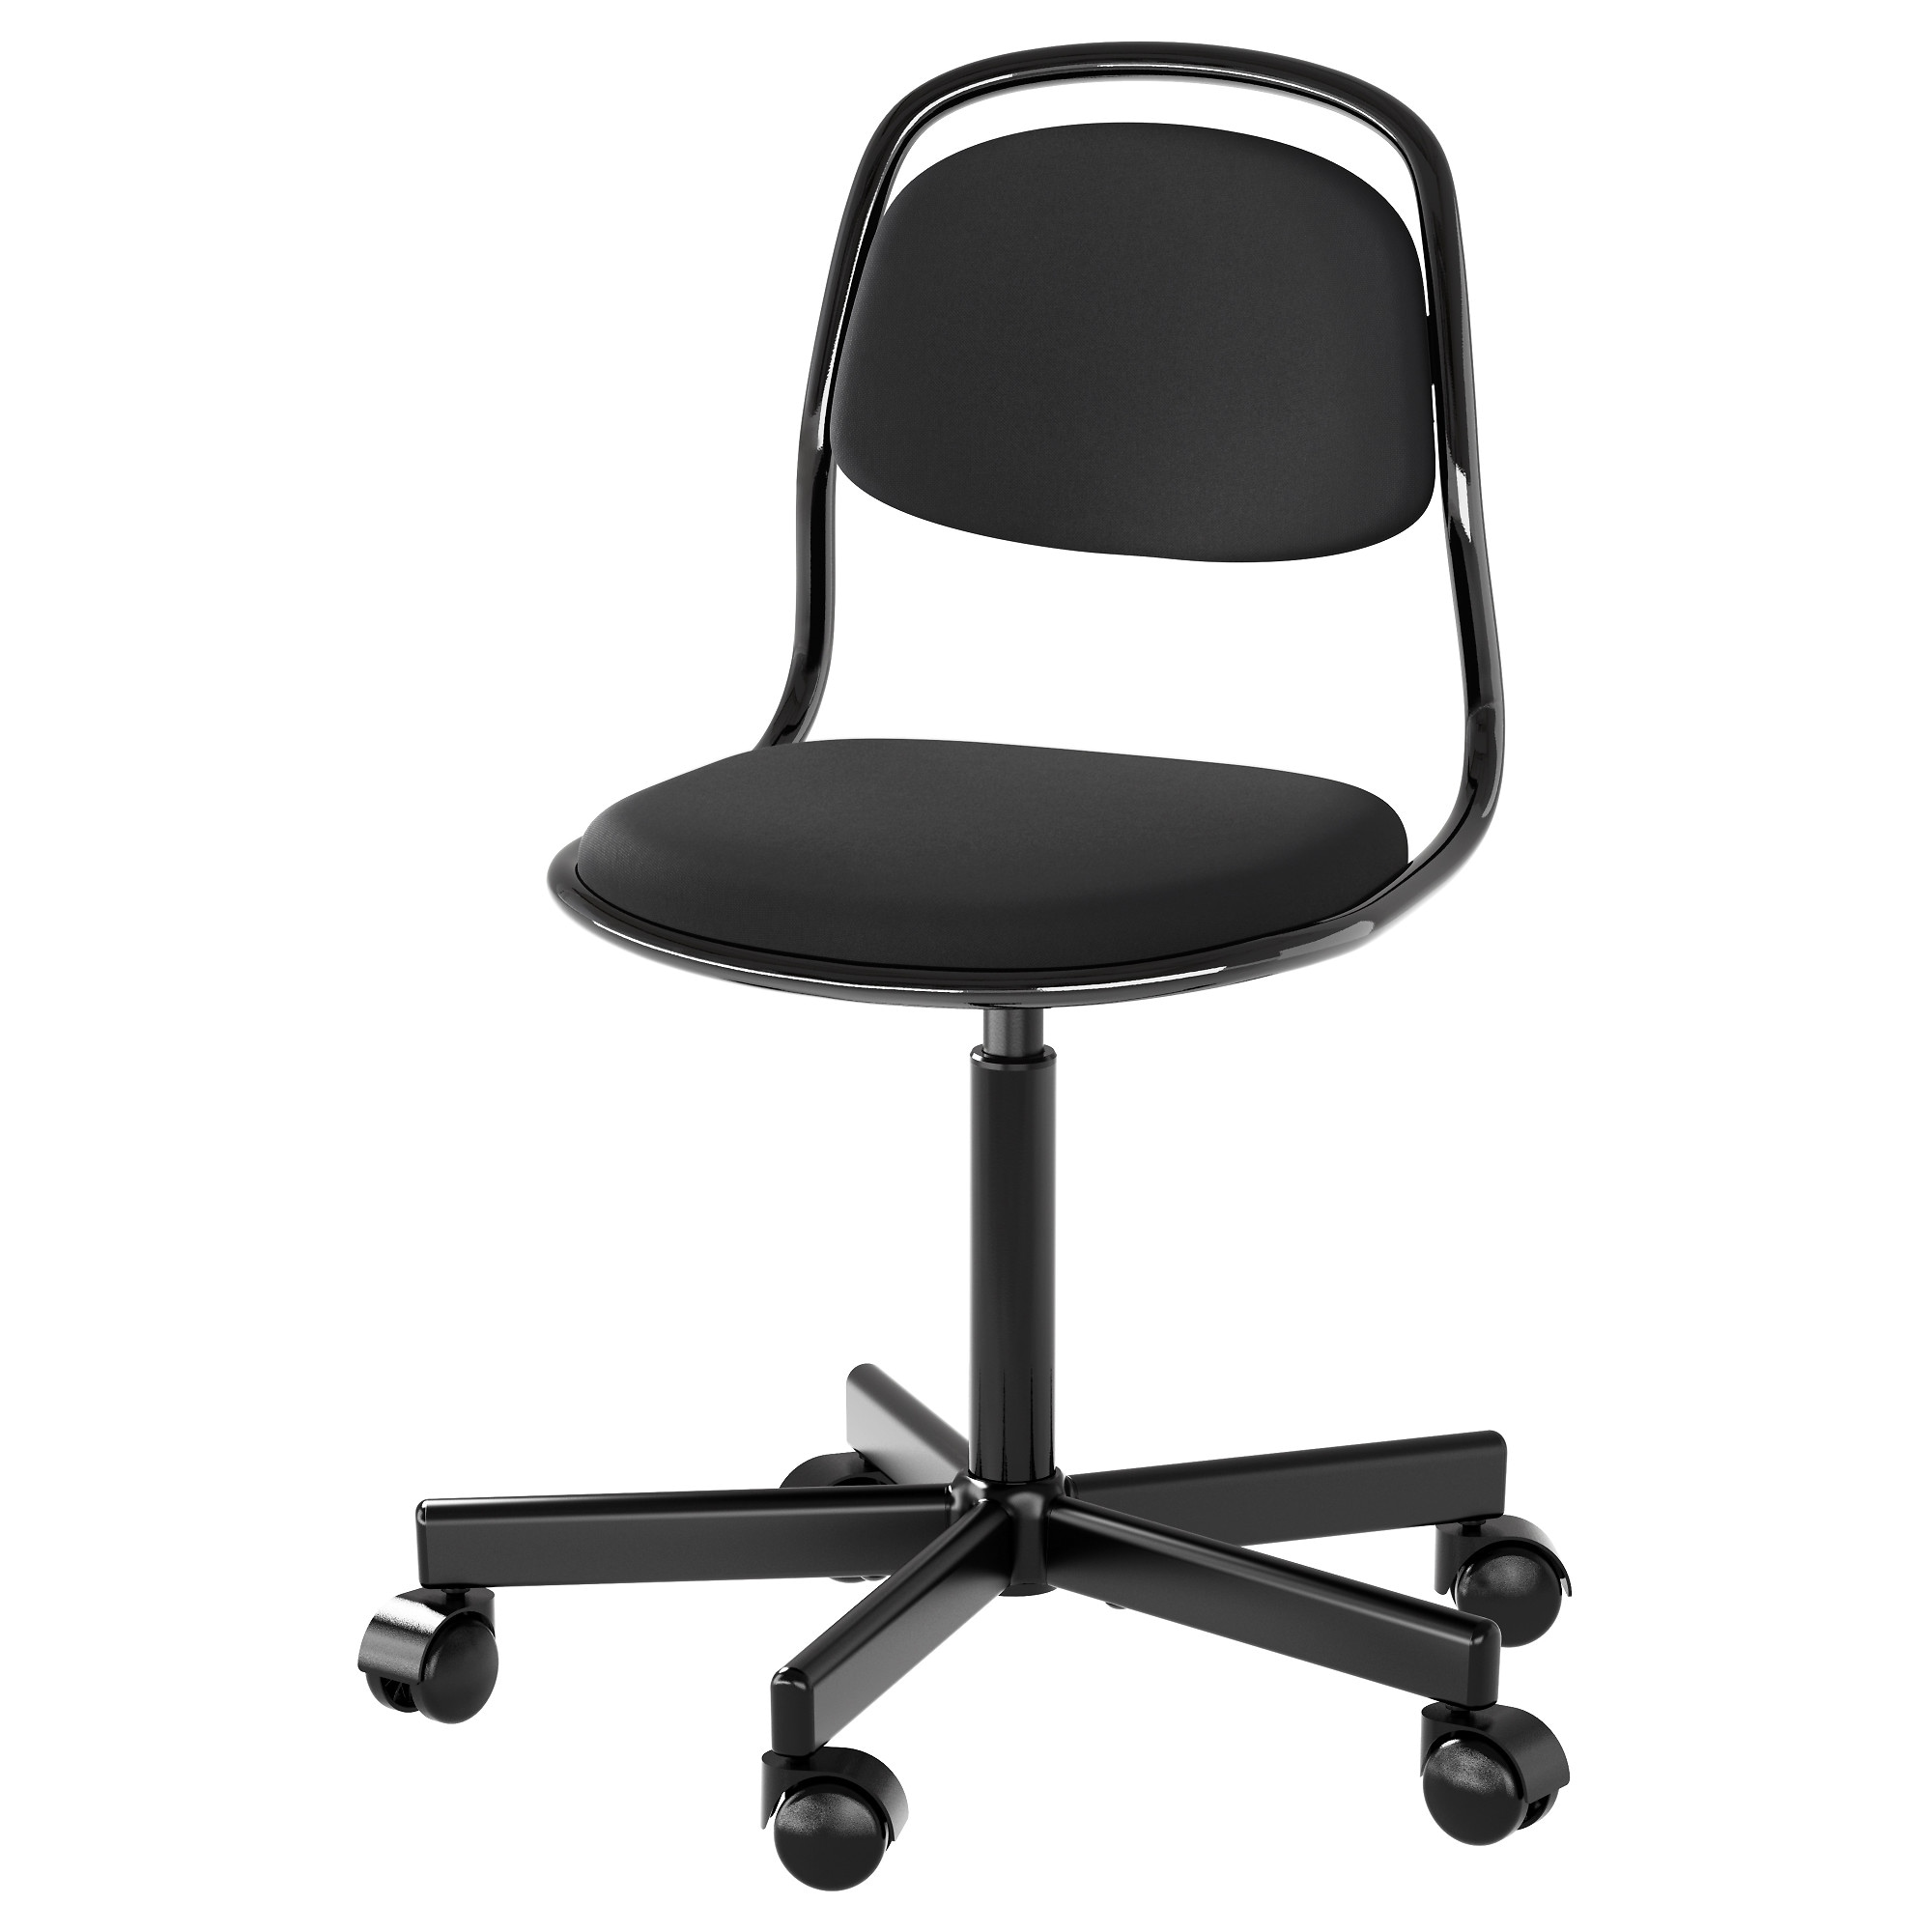 "–RFJ""LL Child s desk chair IKEA"